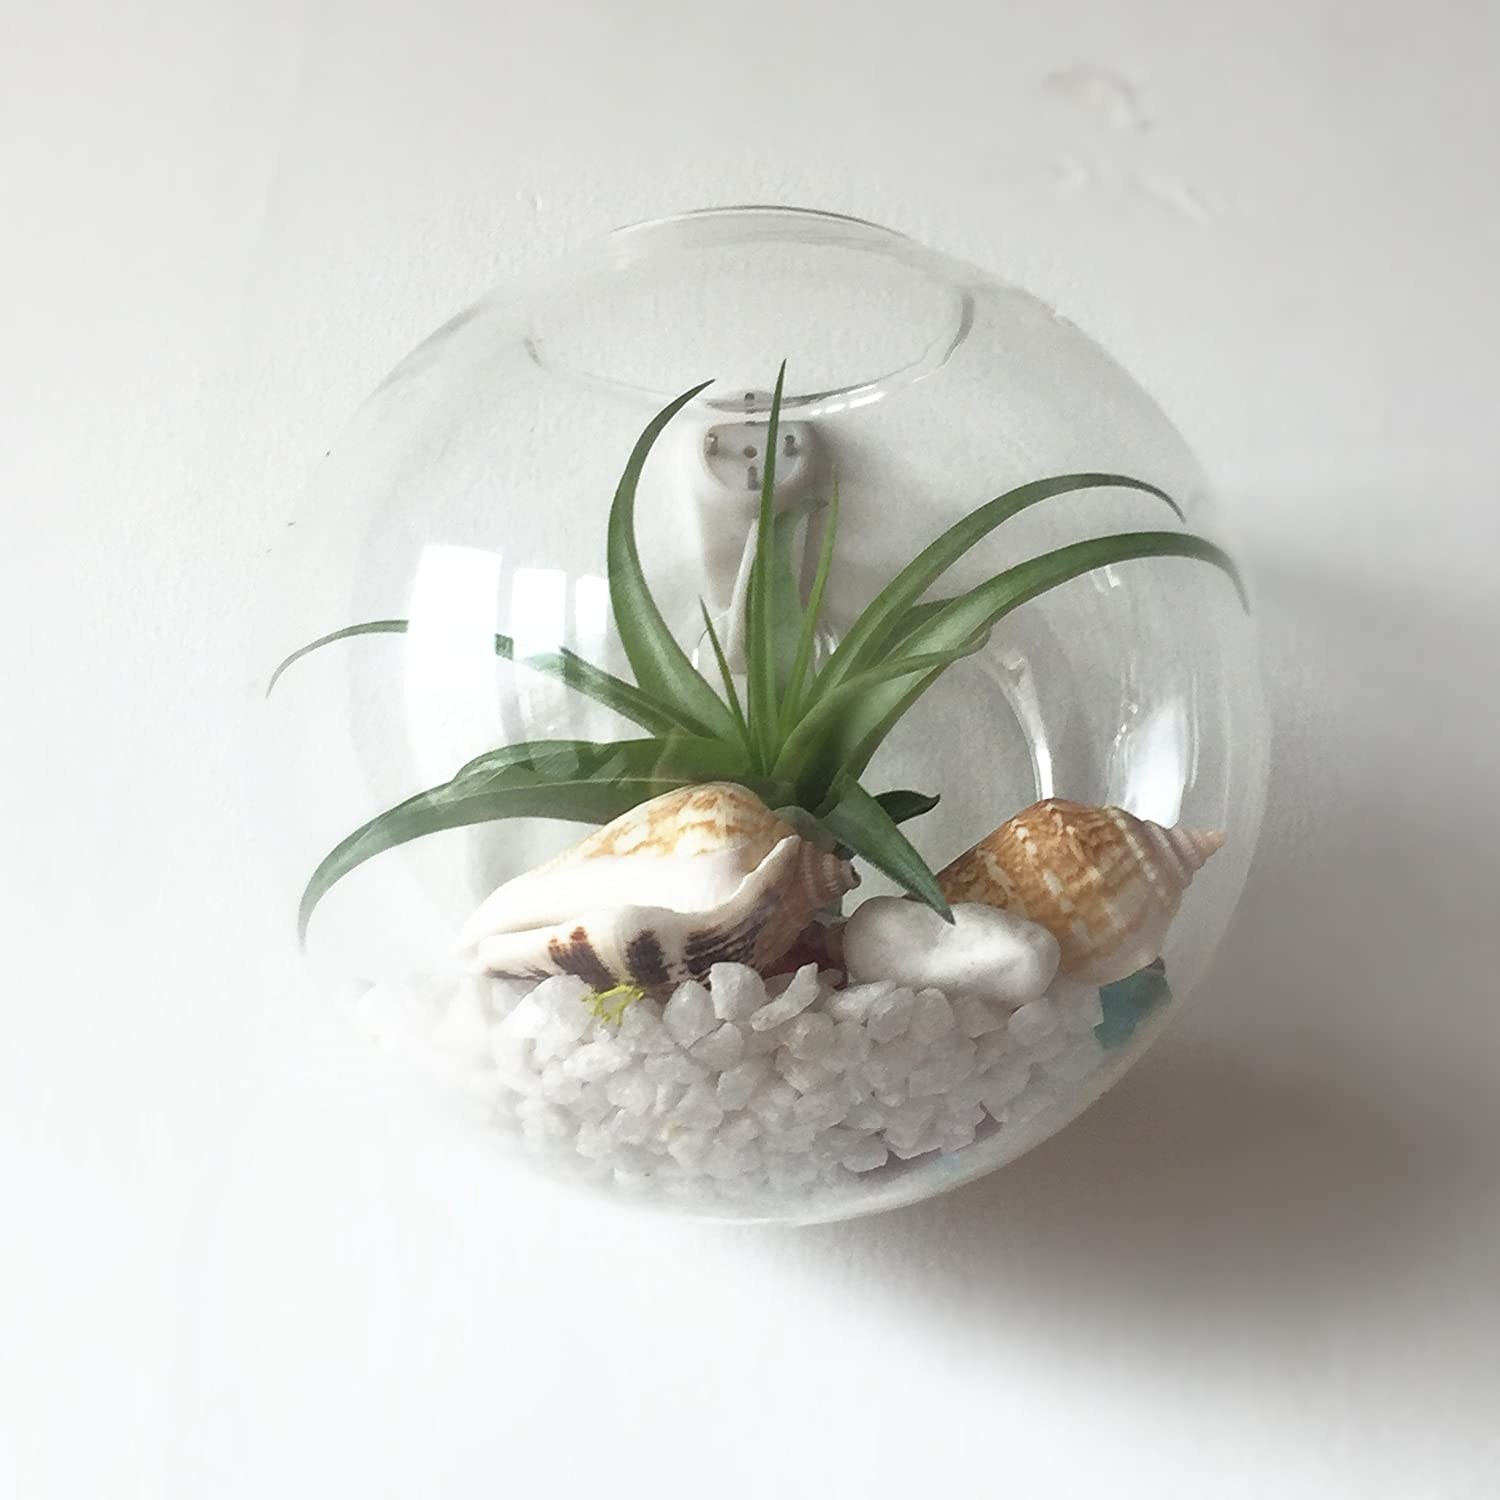 Orimina Pack of 1 Glass Planters Wall Hanging Planters Round Glass Plant Pots Hanging Air Plant Pots Flower Vase Air Plant Terrariums Wall Hanging Plant Container 4.7 Inch